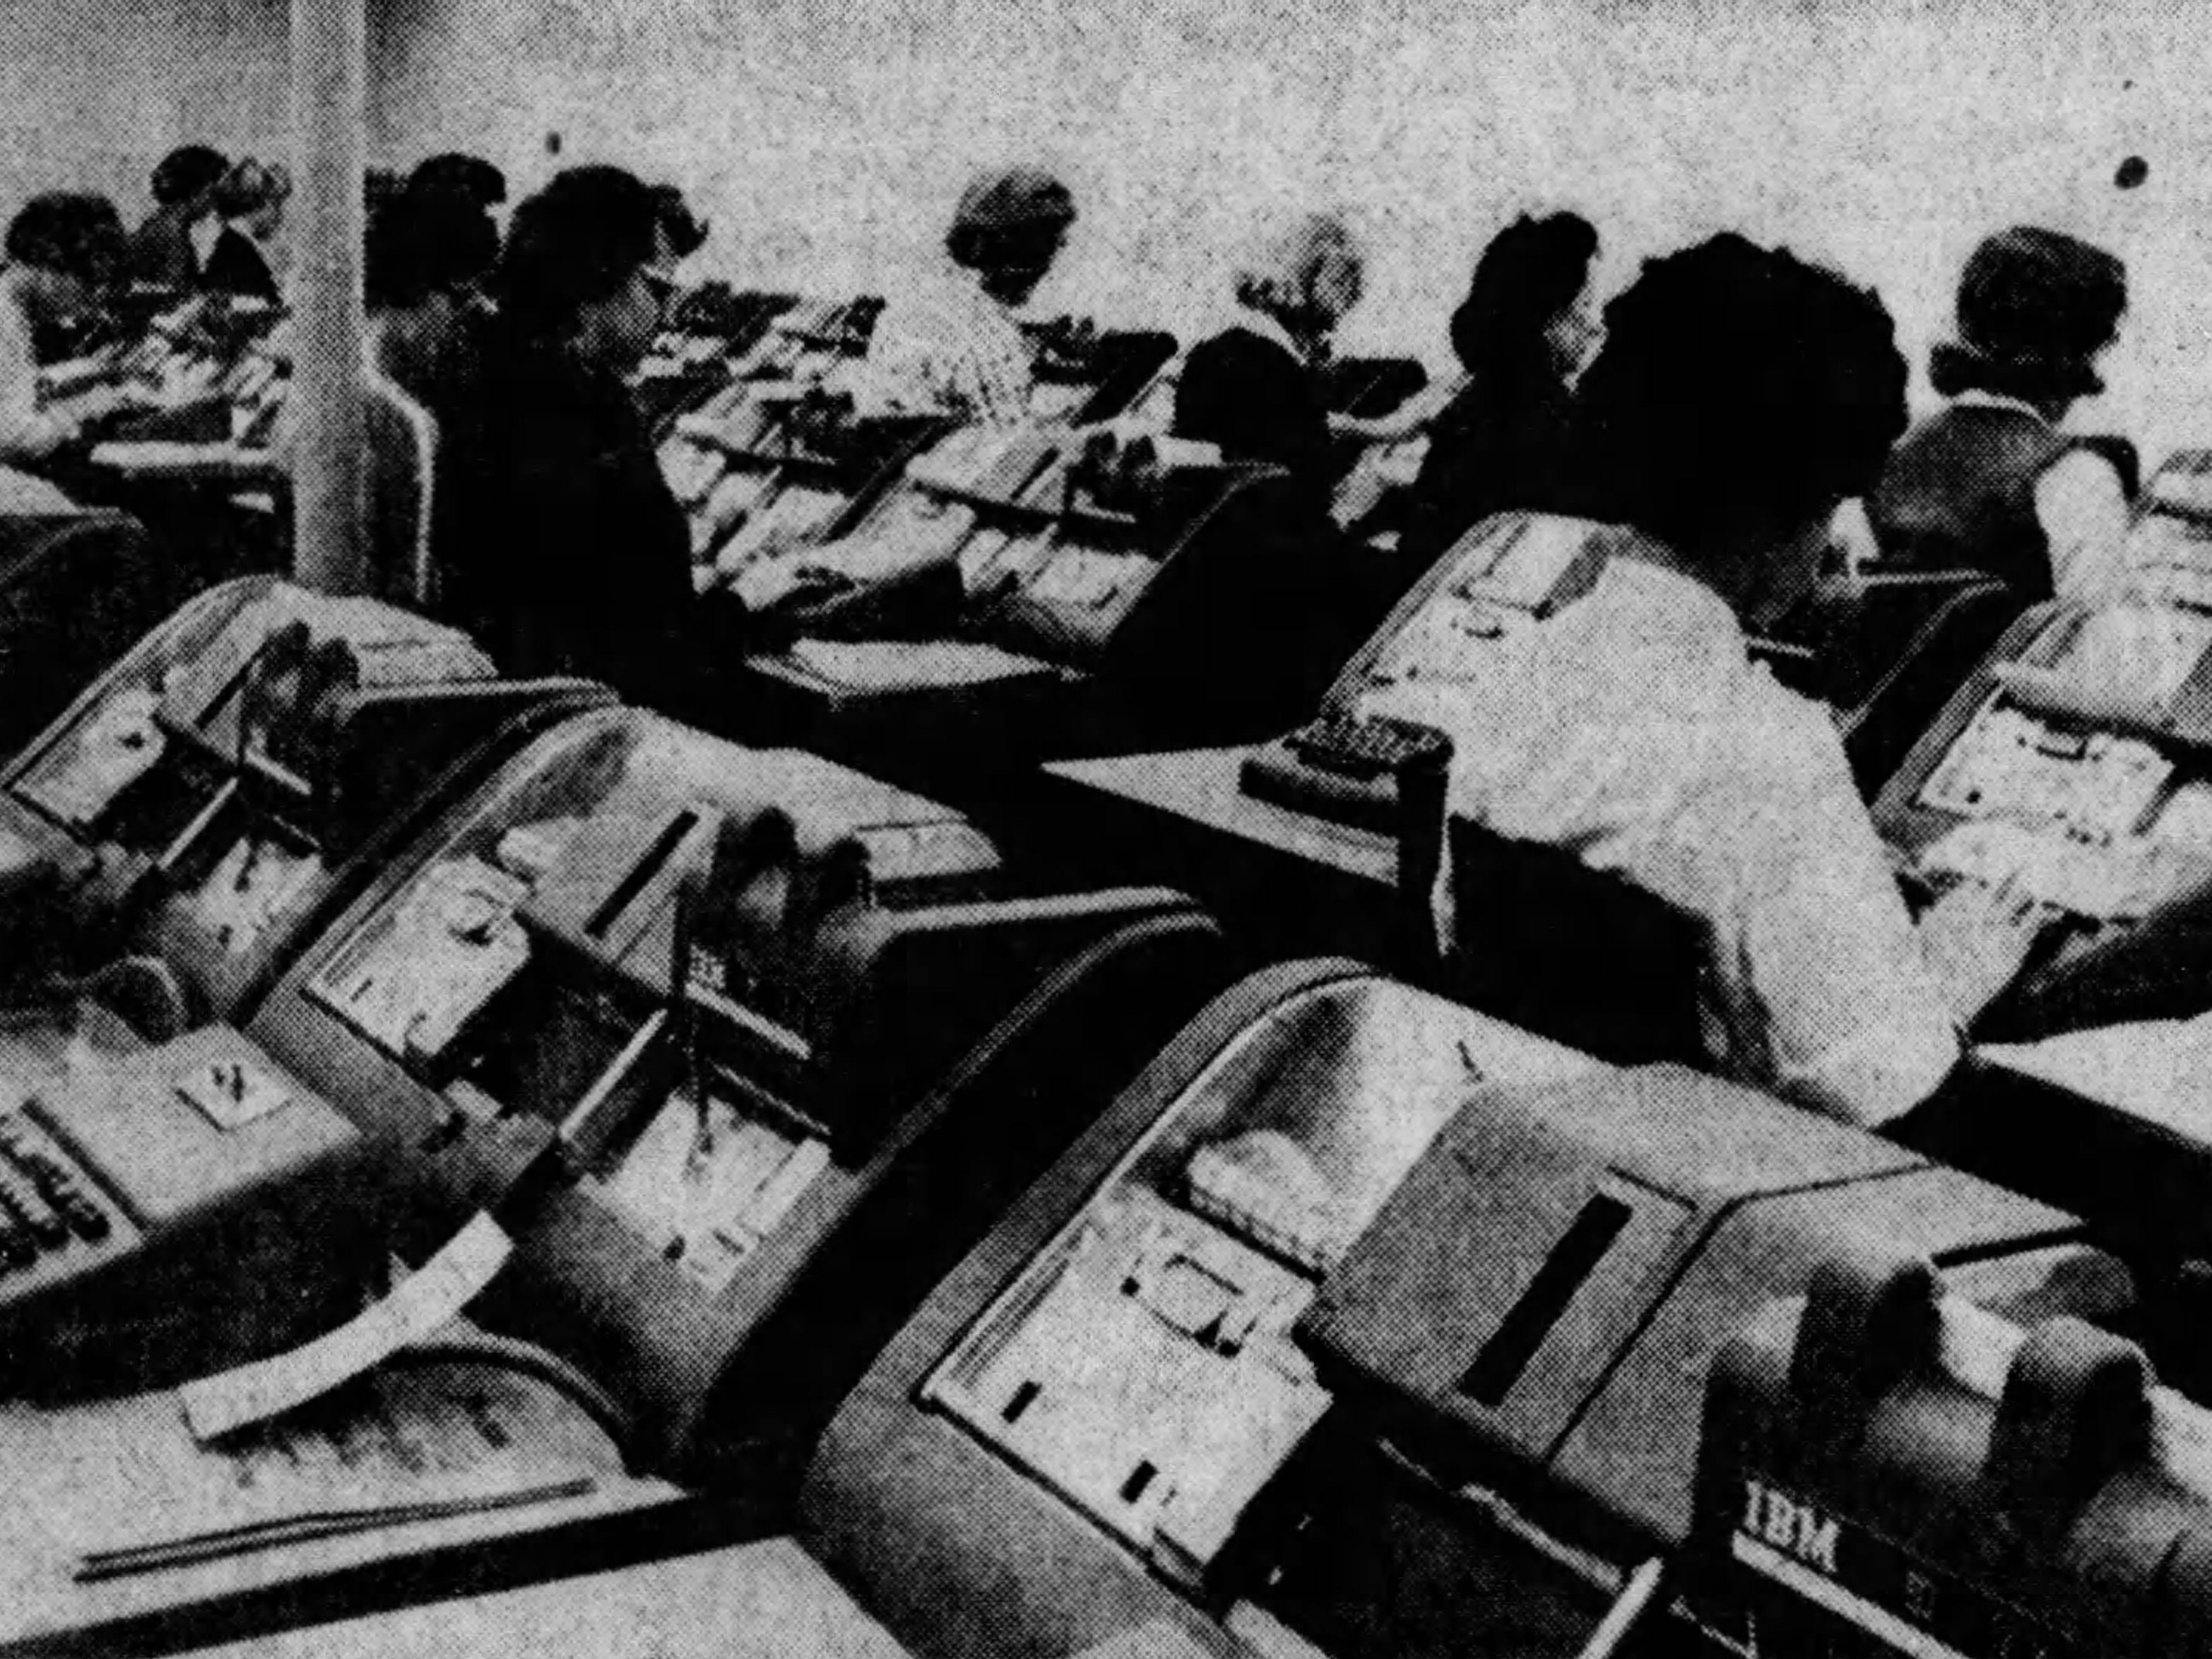 Operators key-punch information from incoming orders into about 60 IBM machines at Figi's Inc., sending the orders on their way to data processing equipment for mailing labels, order acknowledgements and invoices in this Nov. 13, 1964, photo.